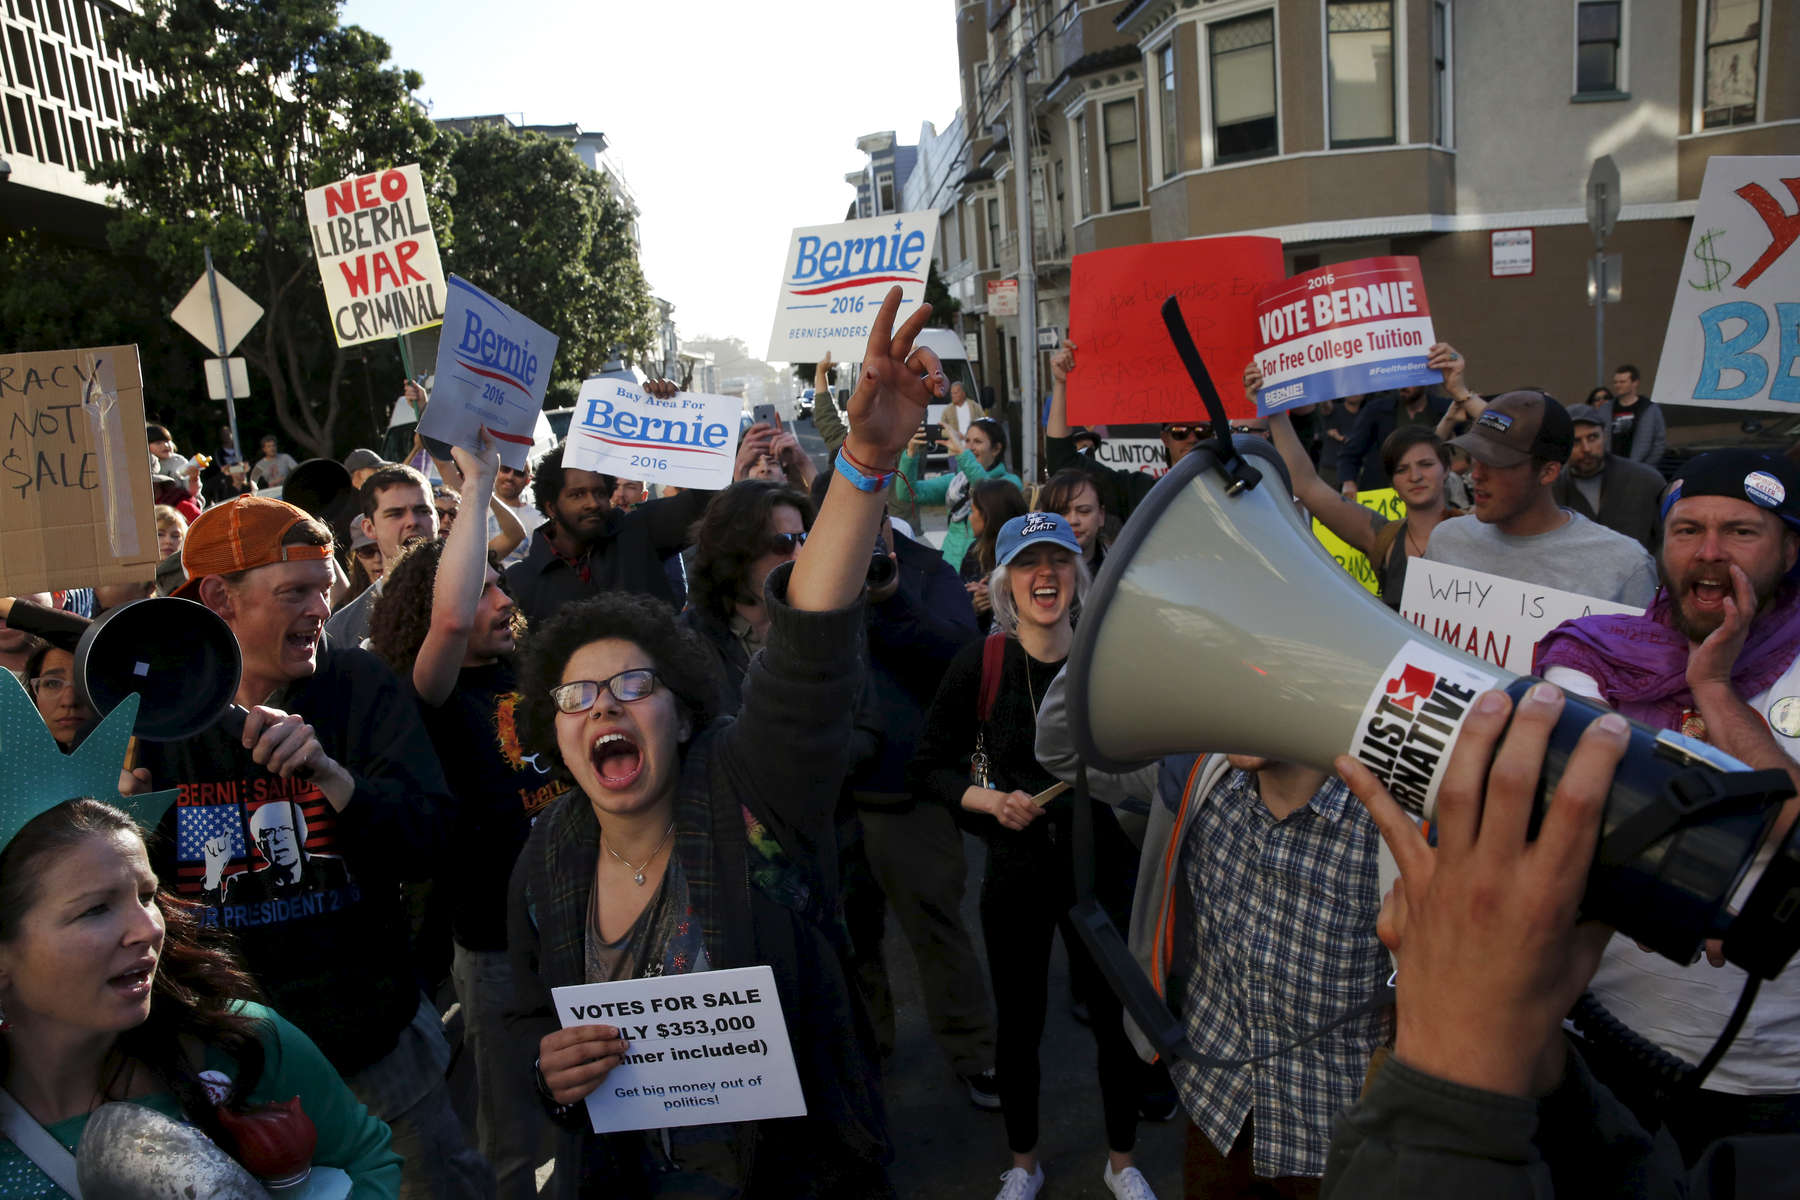 Ellie Koepplinger cheers with other Bernie Sanders supporters during a Hillary Clinton fundraising protest in Nob Hill April 15, 2016 in San Francisco, Calif. The fundraiser was attended by George Clooney, among others. Dozens of protesters showed up and marched around the block to each entrance where police had set up barricades.during a Hillary Clinton fundraising protest in Nob Hill April 15, 2016 in San Francisco, Calif. The fundraiser was attended by George Clooney, among others. Dozens of protesters showed up and marched around the block to each entrance where police had set up barricades.